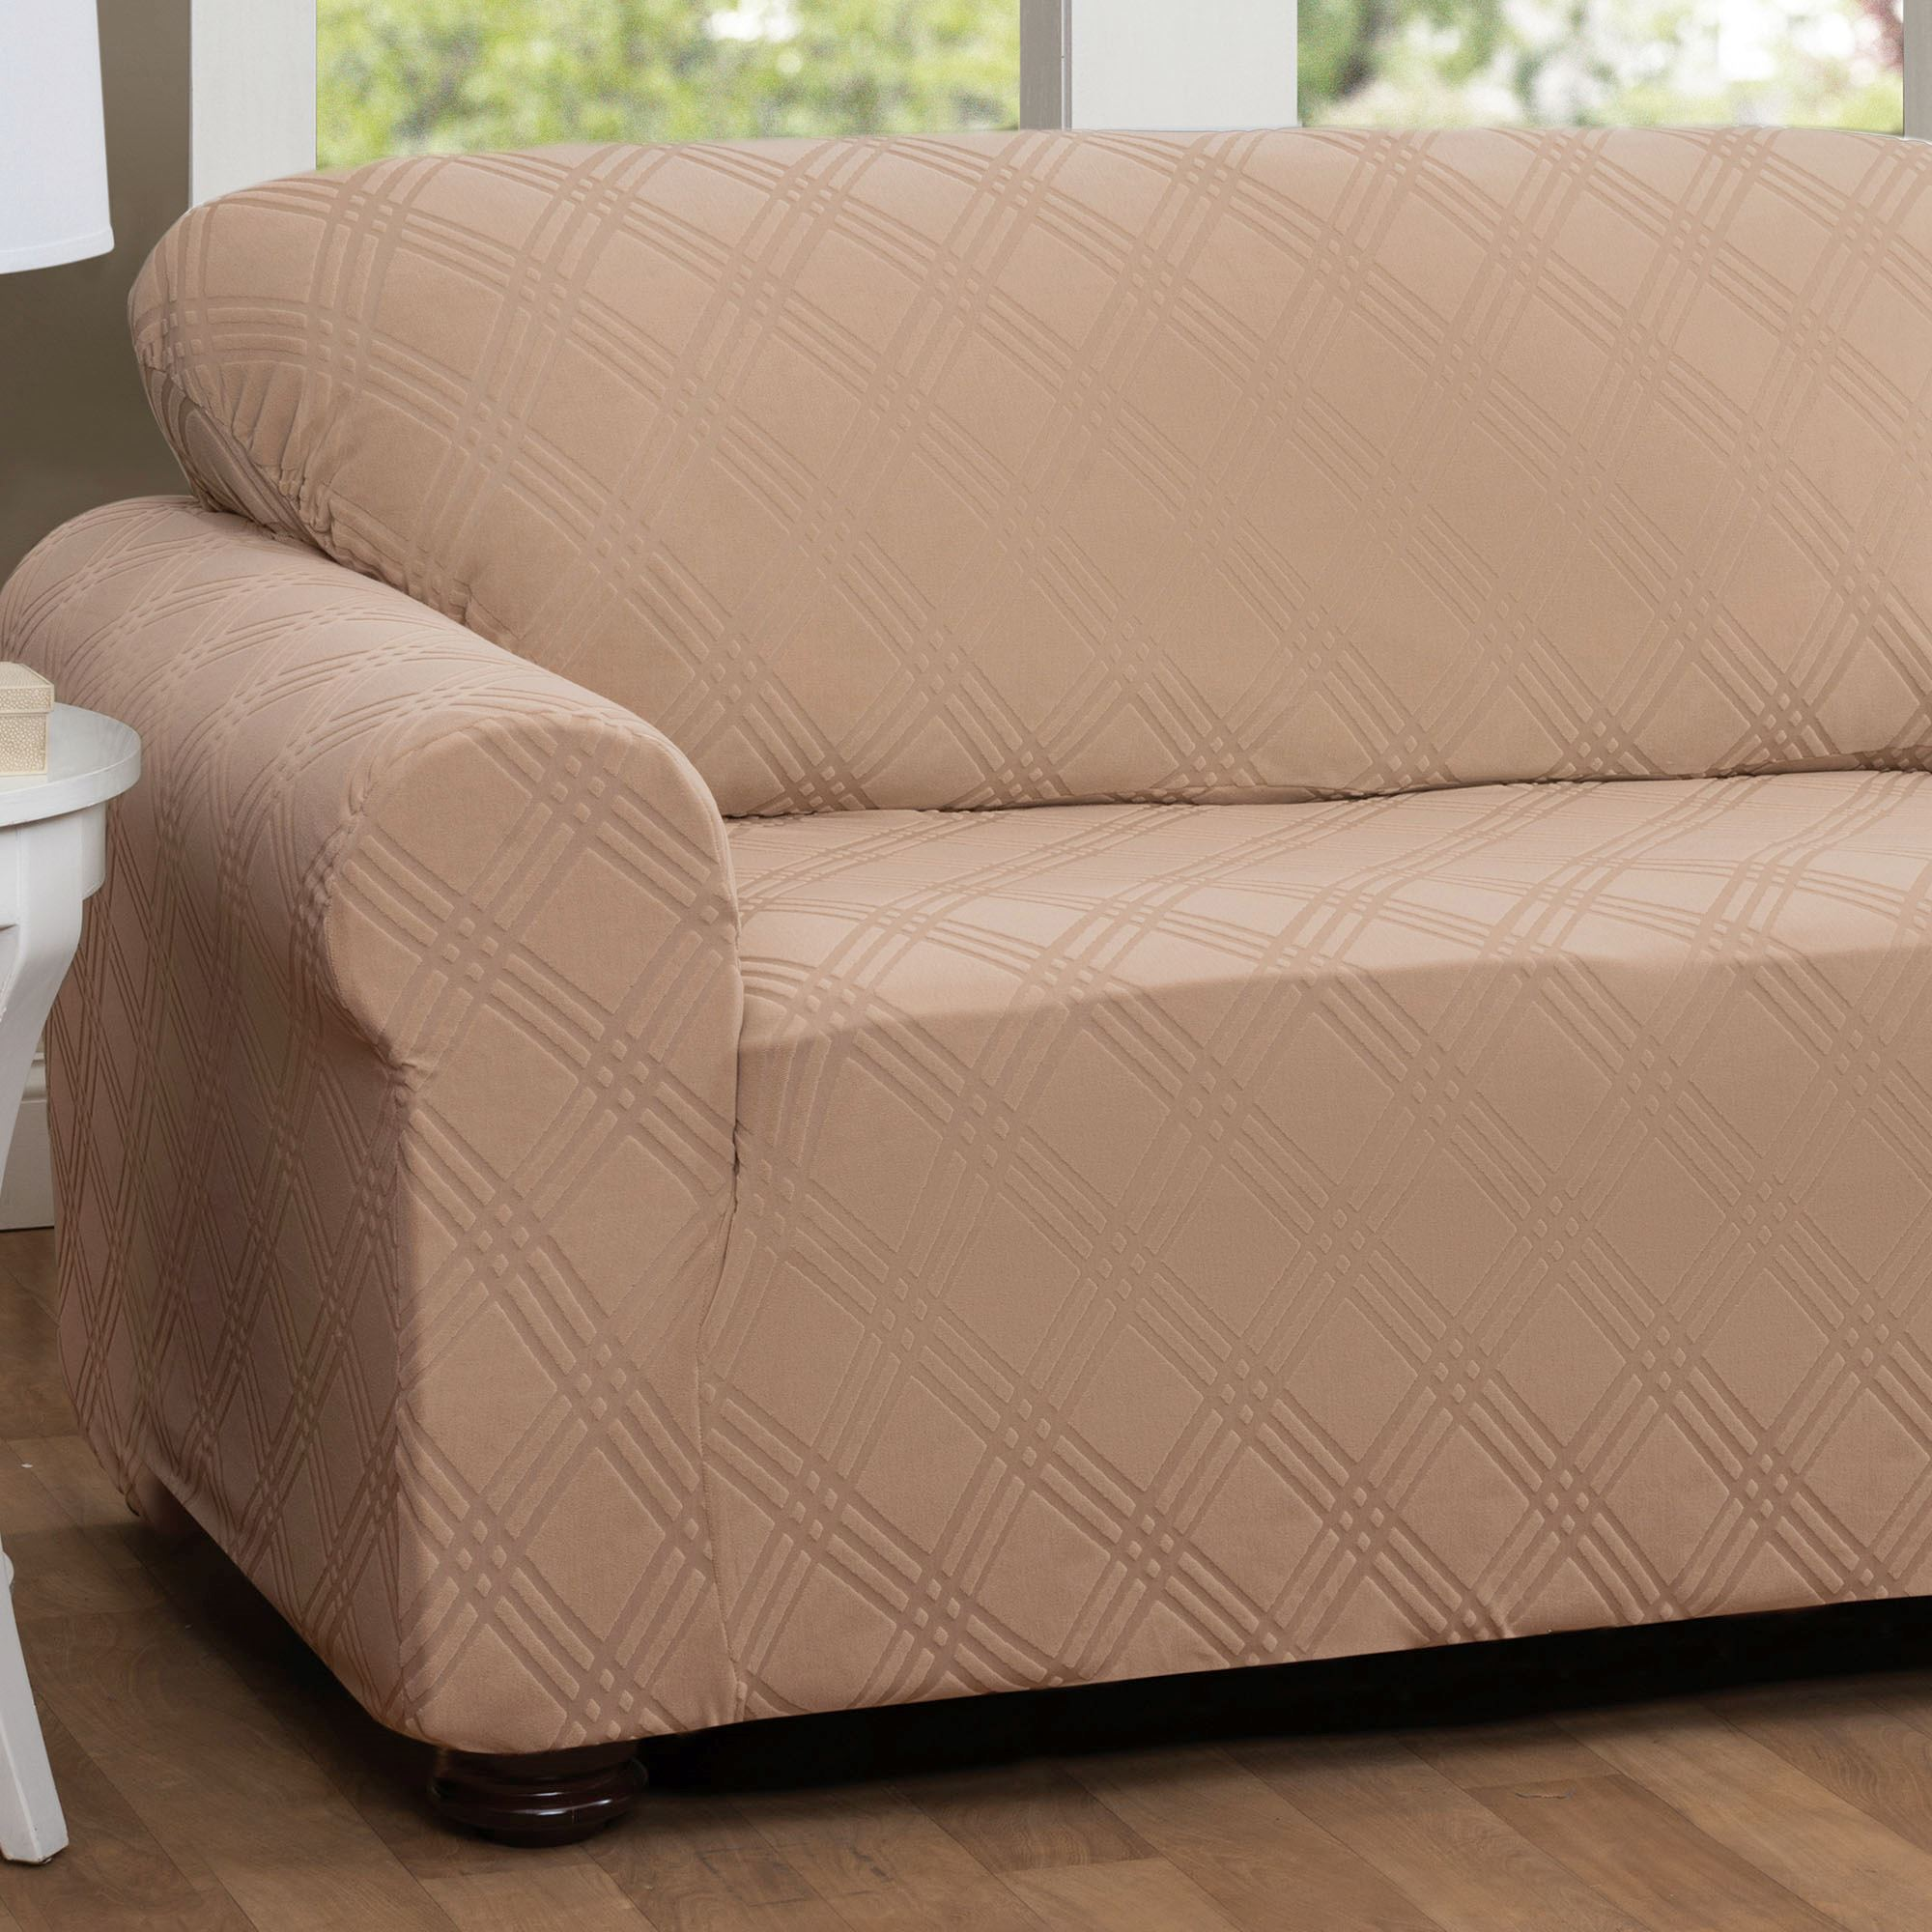 Double Diamond Stretch Slipcover Sofa